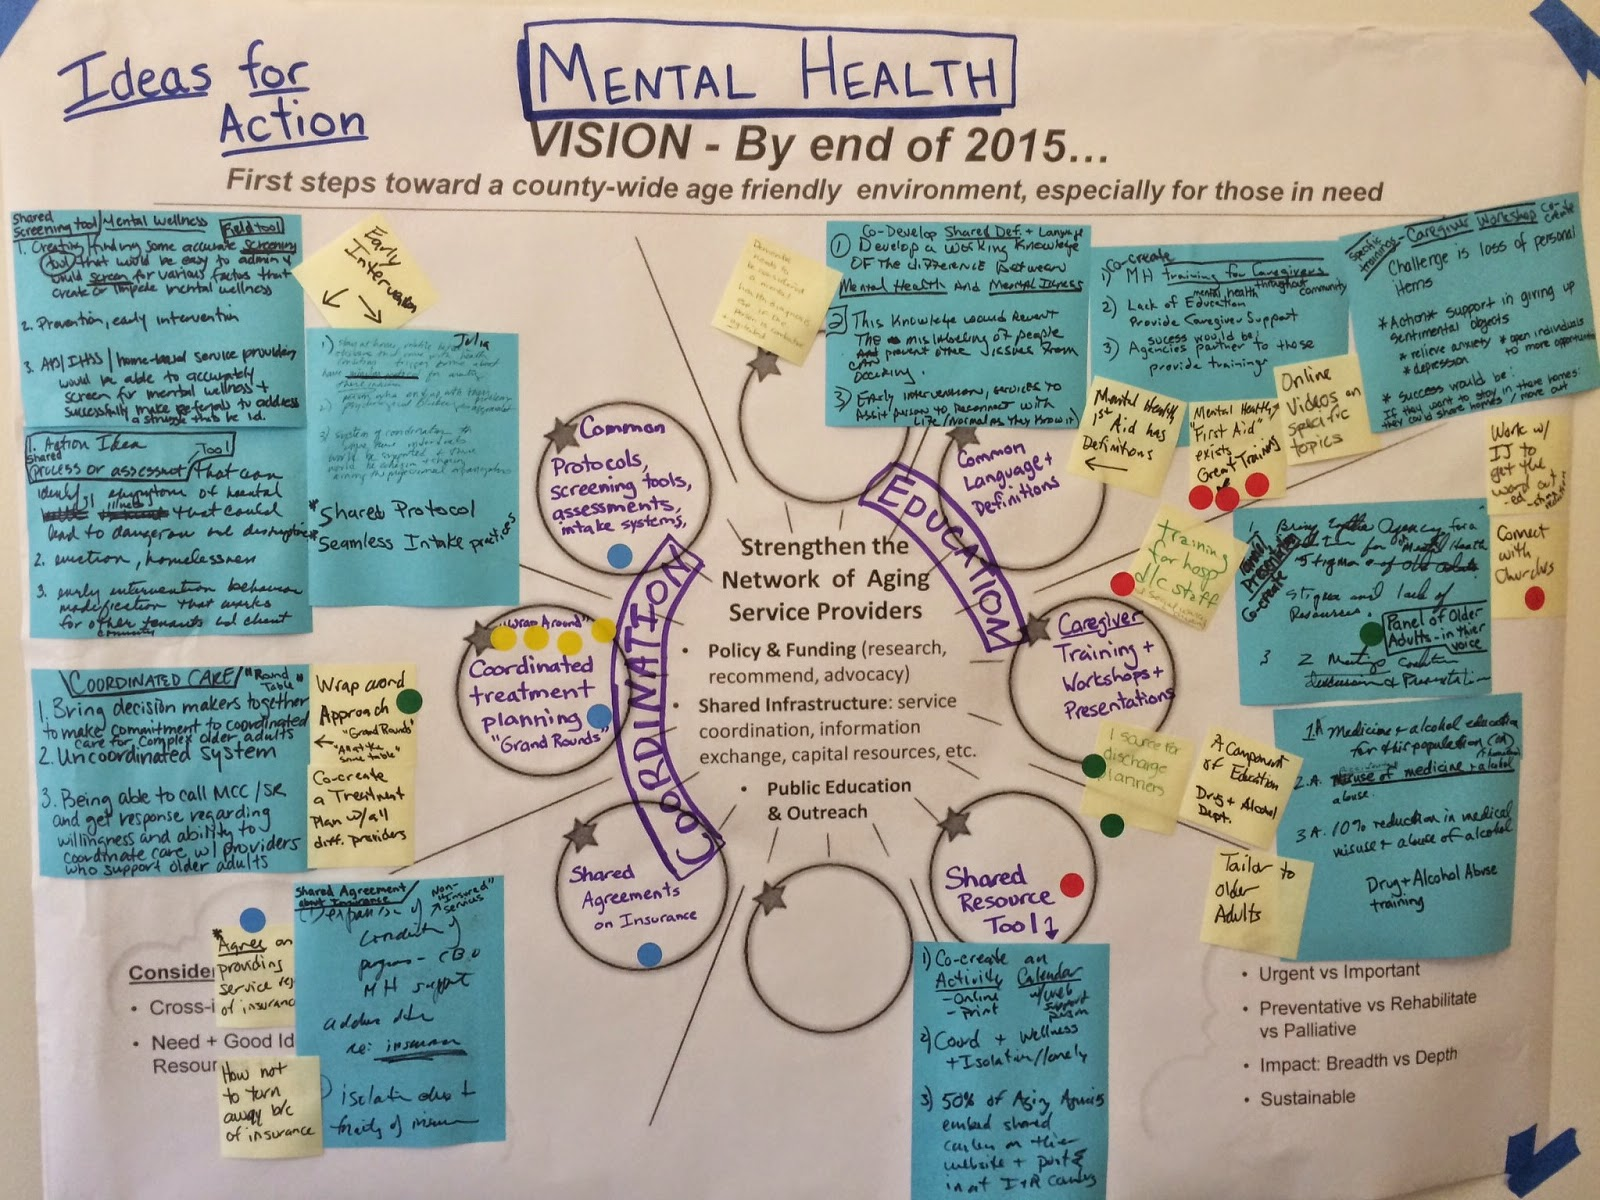 Mental Health Action Ideas Graphic